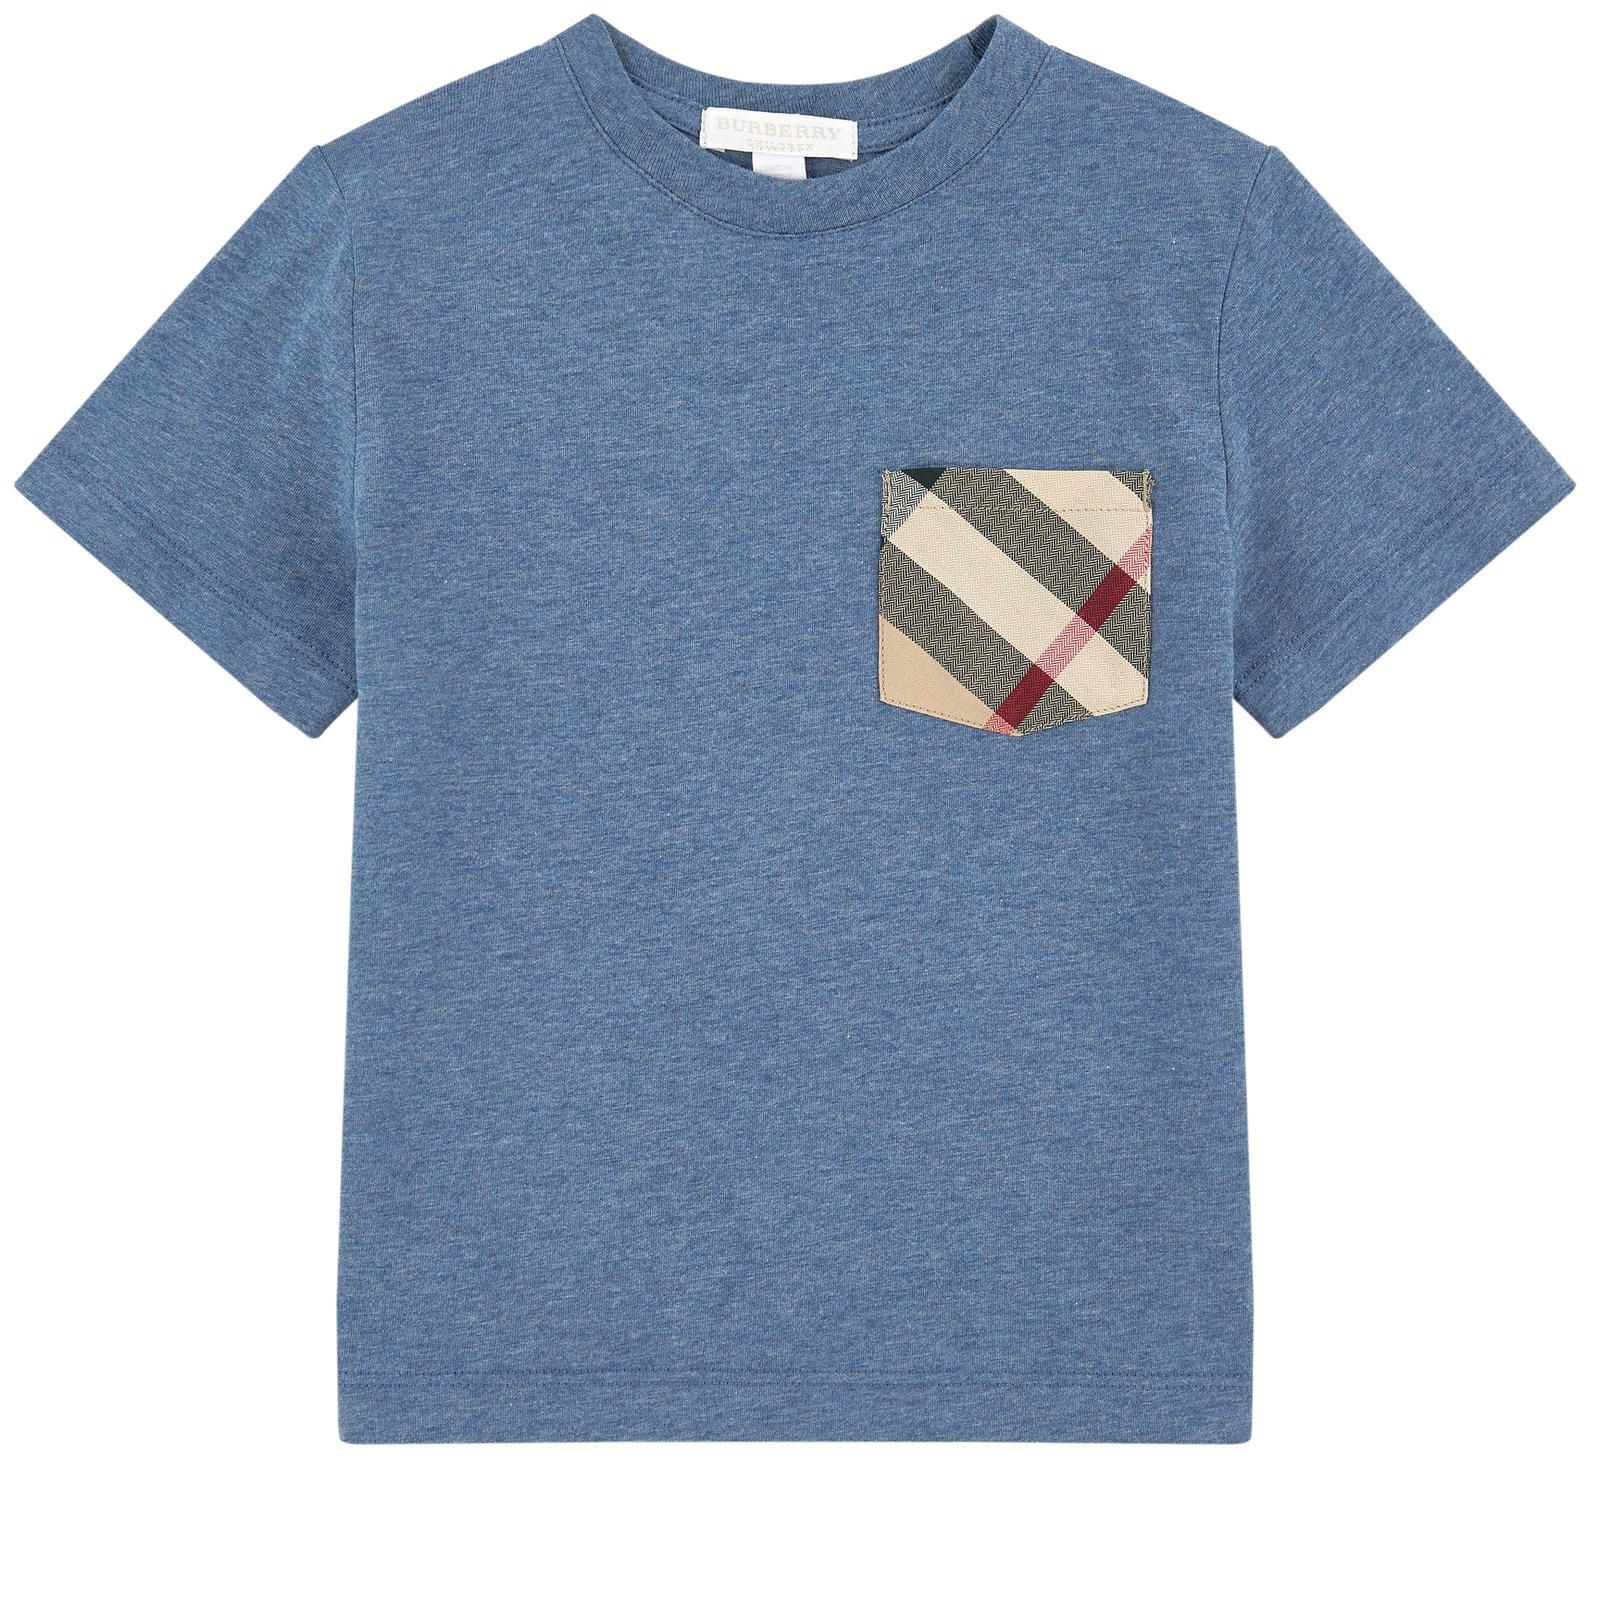 boys burberry t shirt